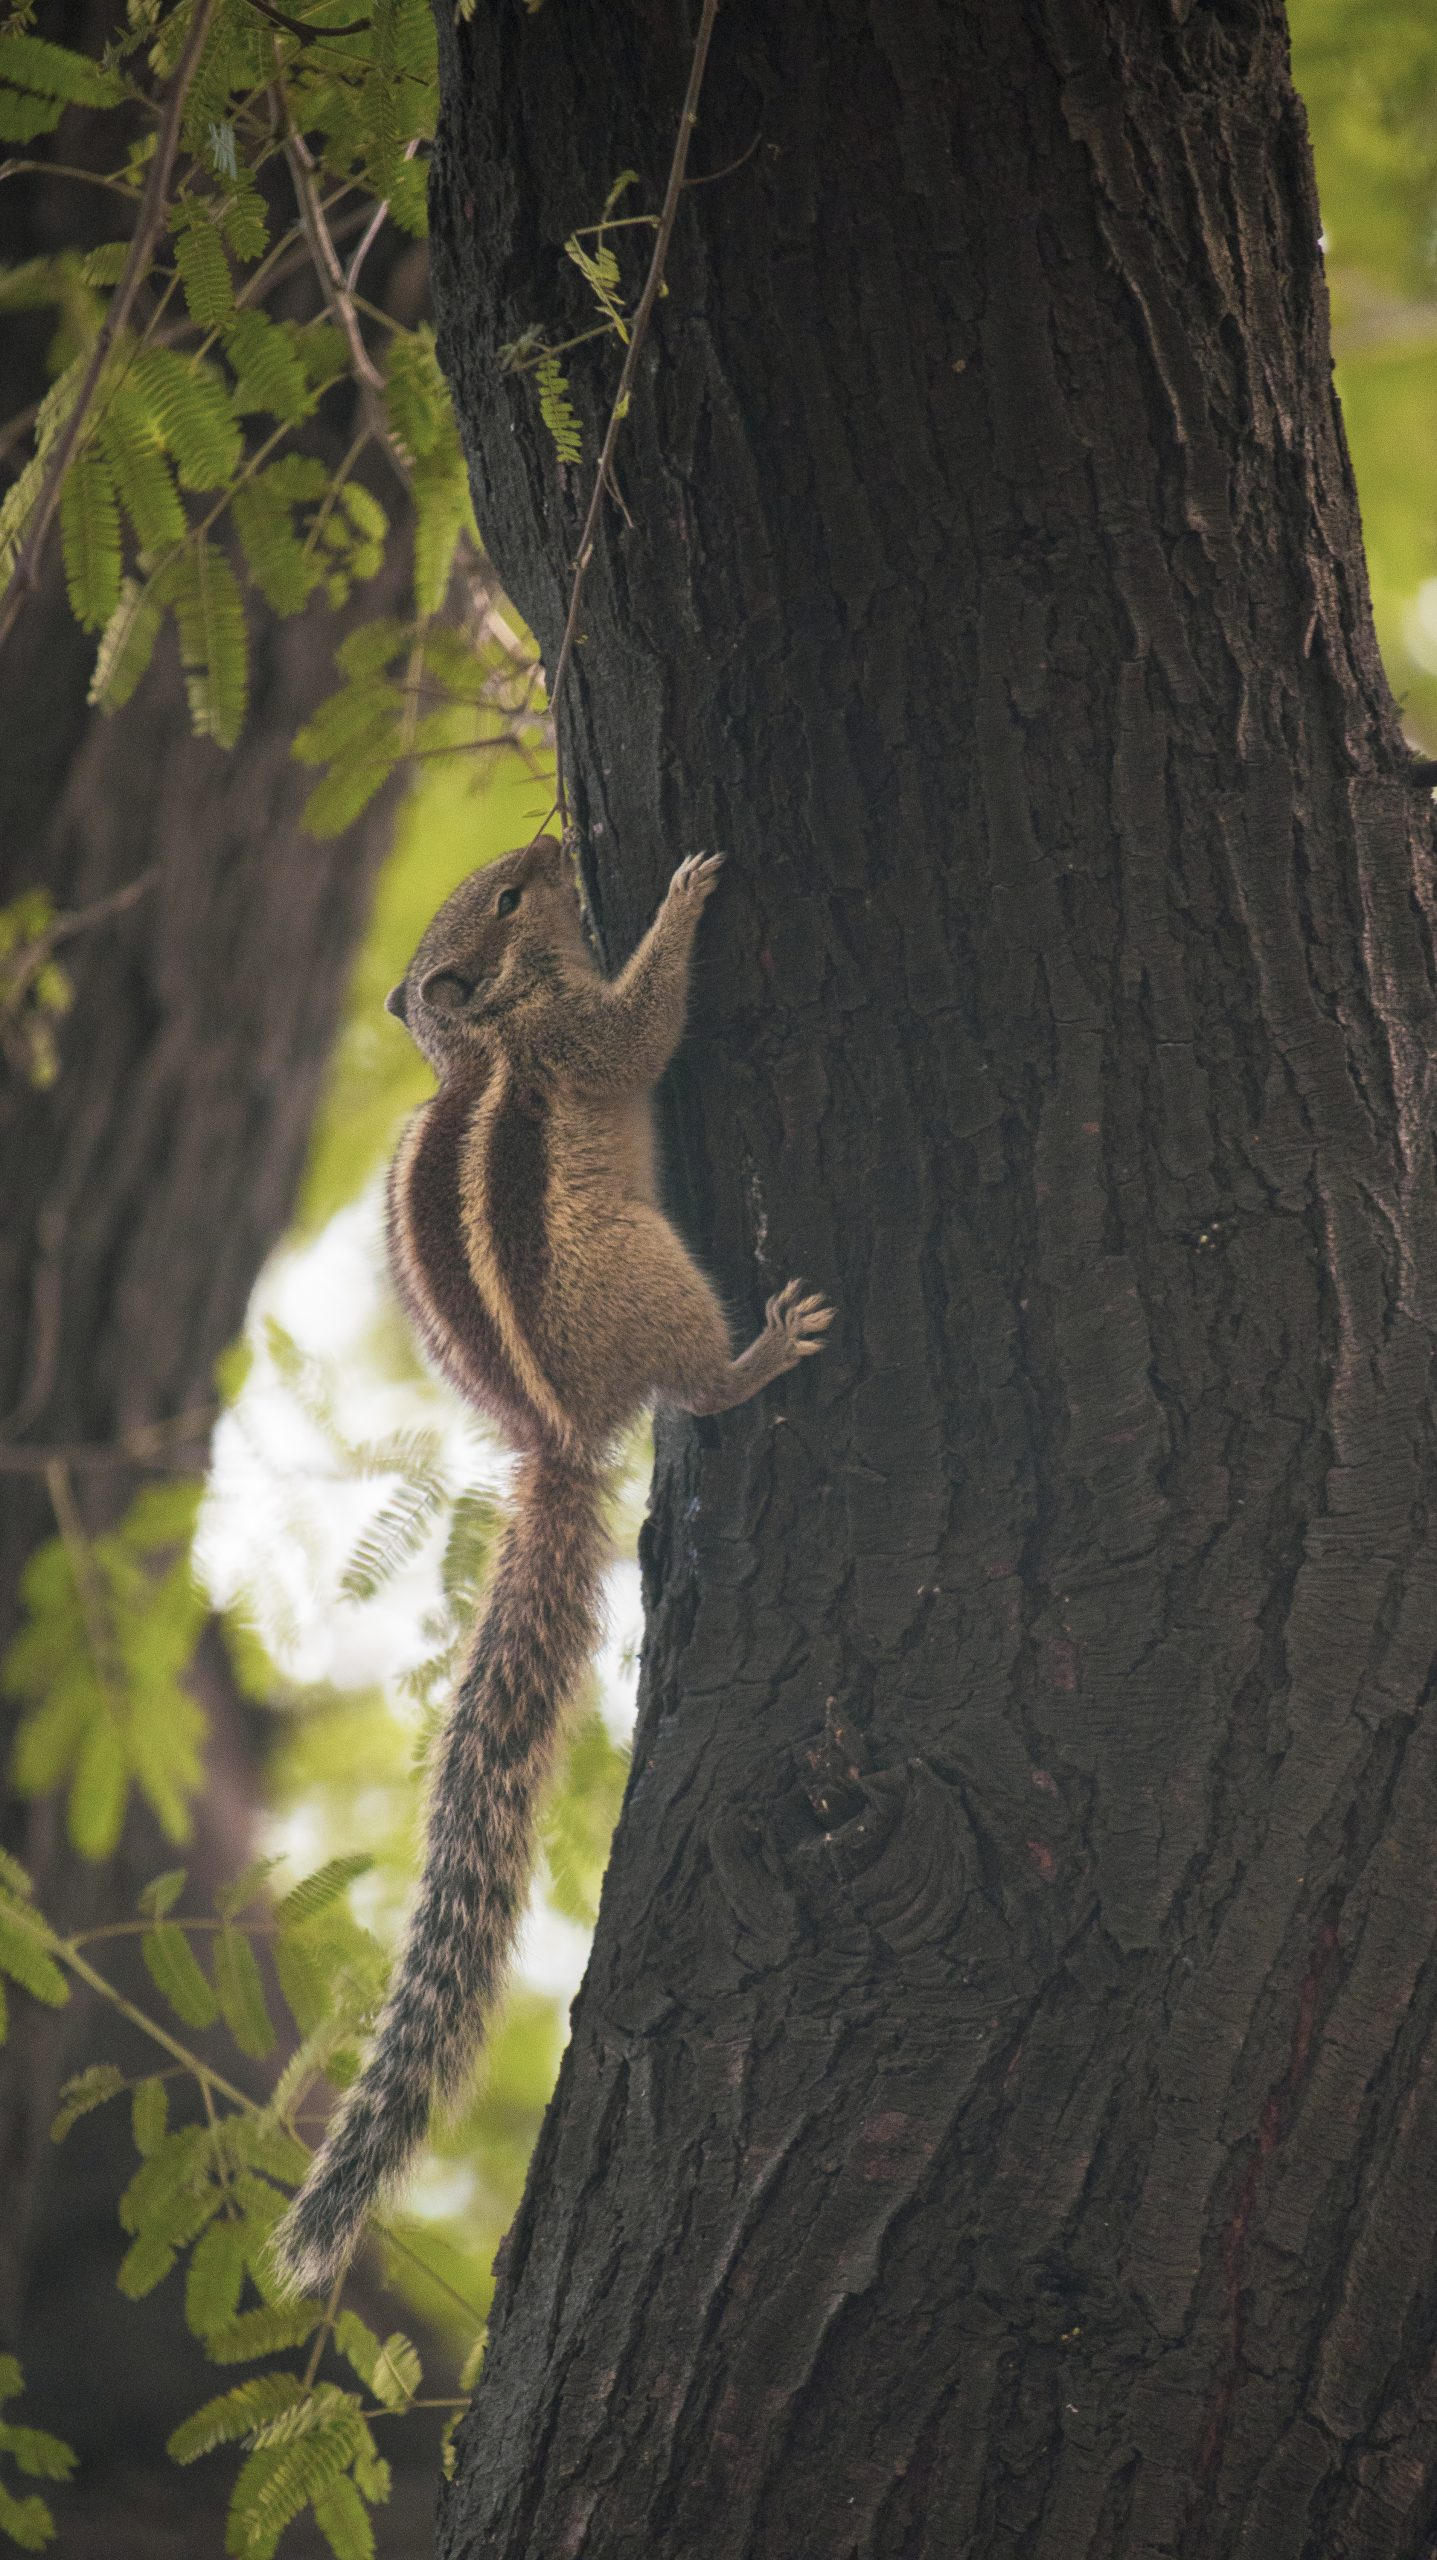 Squirrel climbing on a trunk